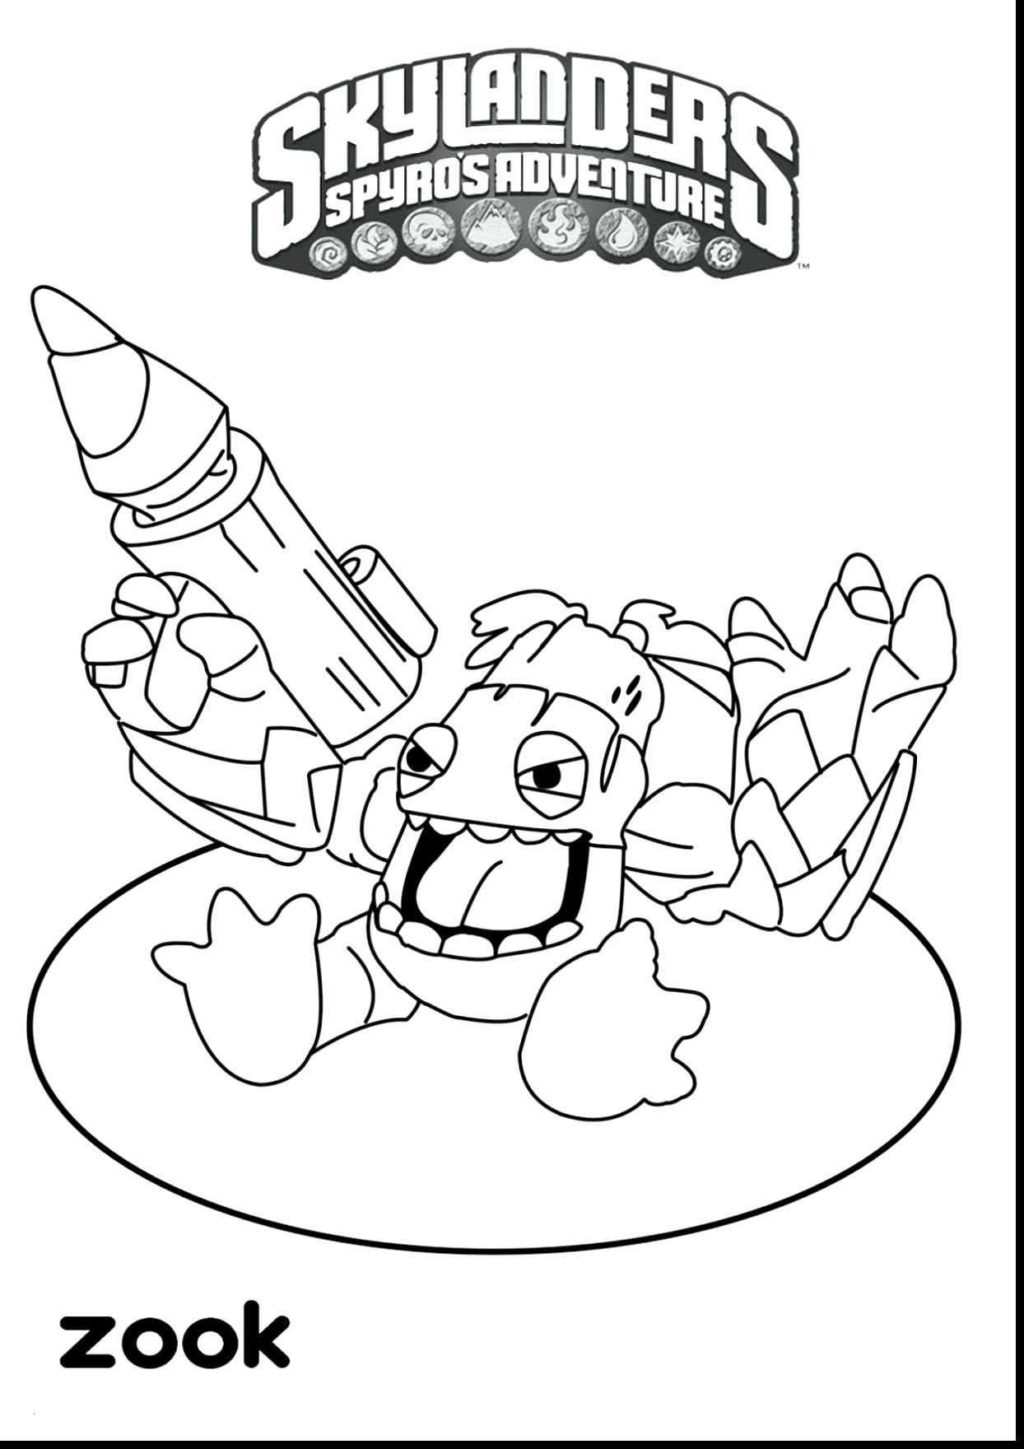 Elf Coloring Pages Printable Coloring Book World Marvelous Elf Coloring Pages Printable